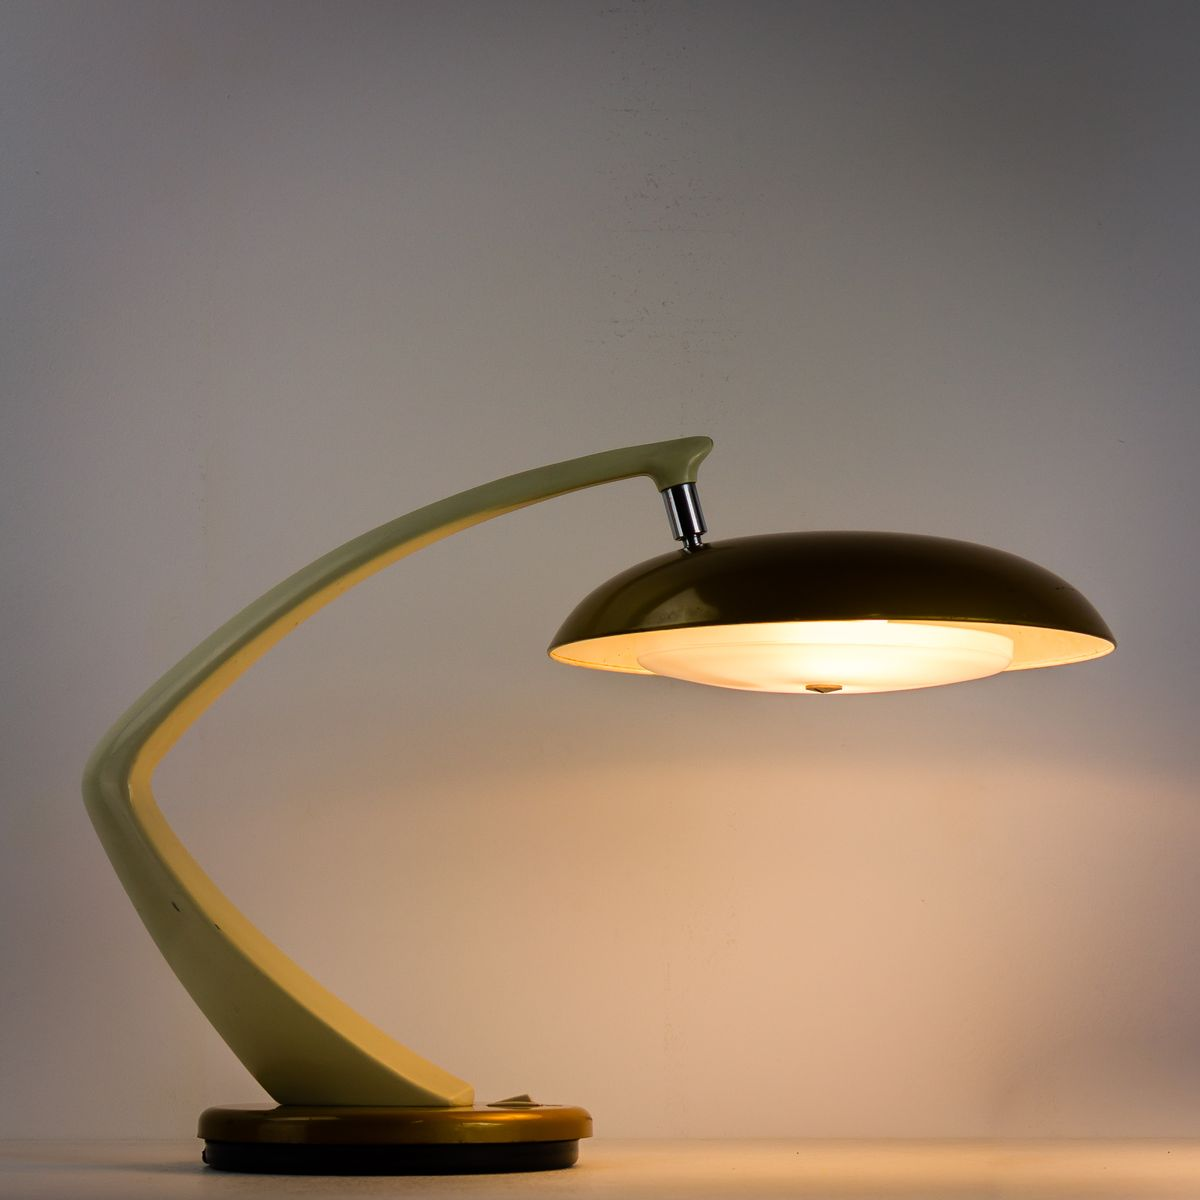 White Amp Gold Desk Lamp From Fase Madrid 1970s For Sale At